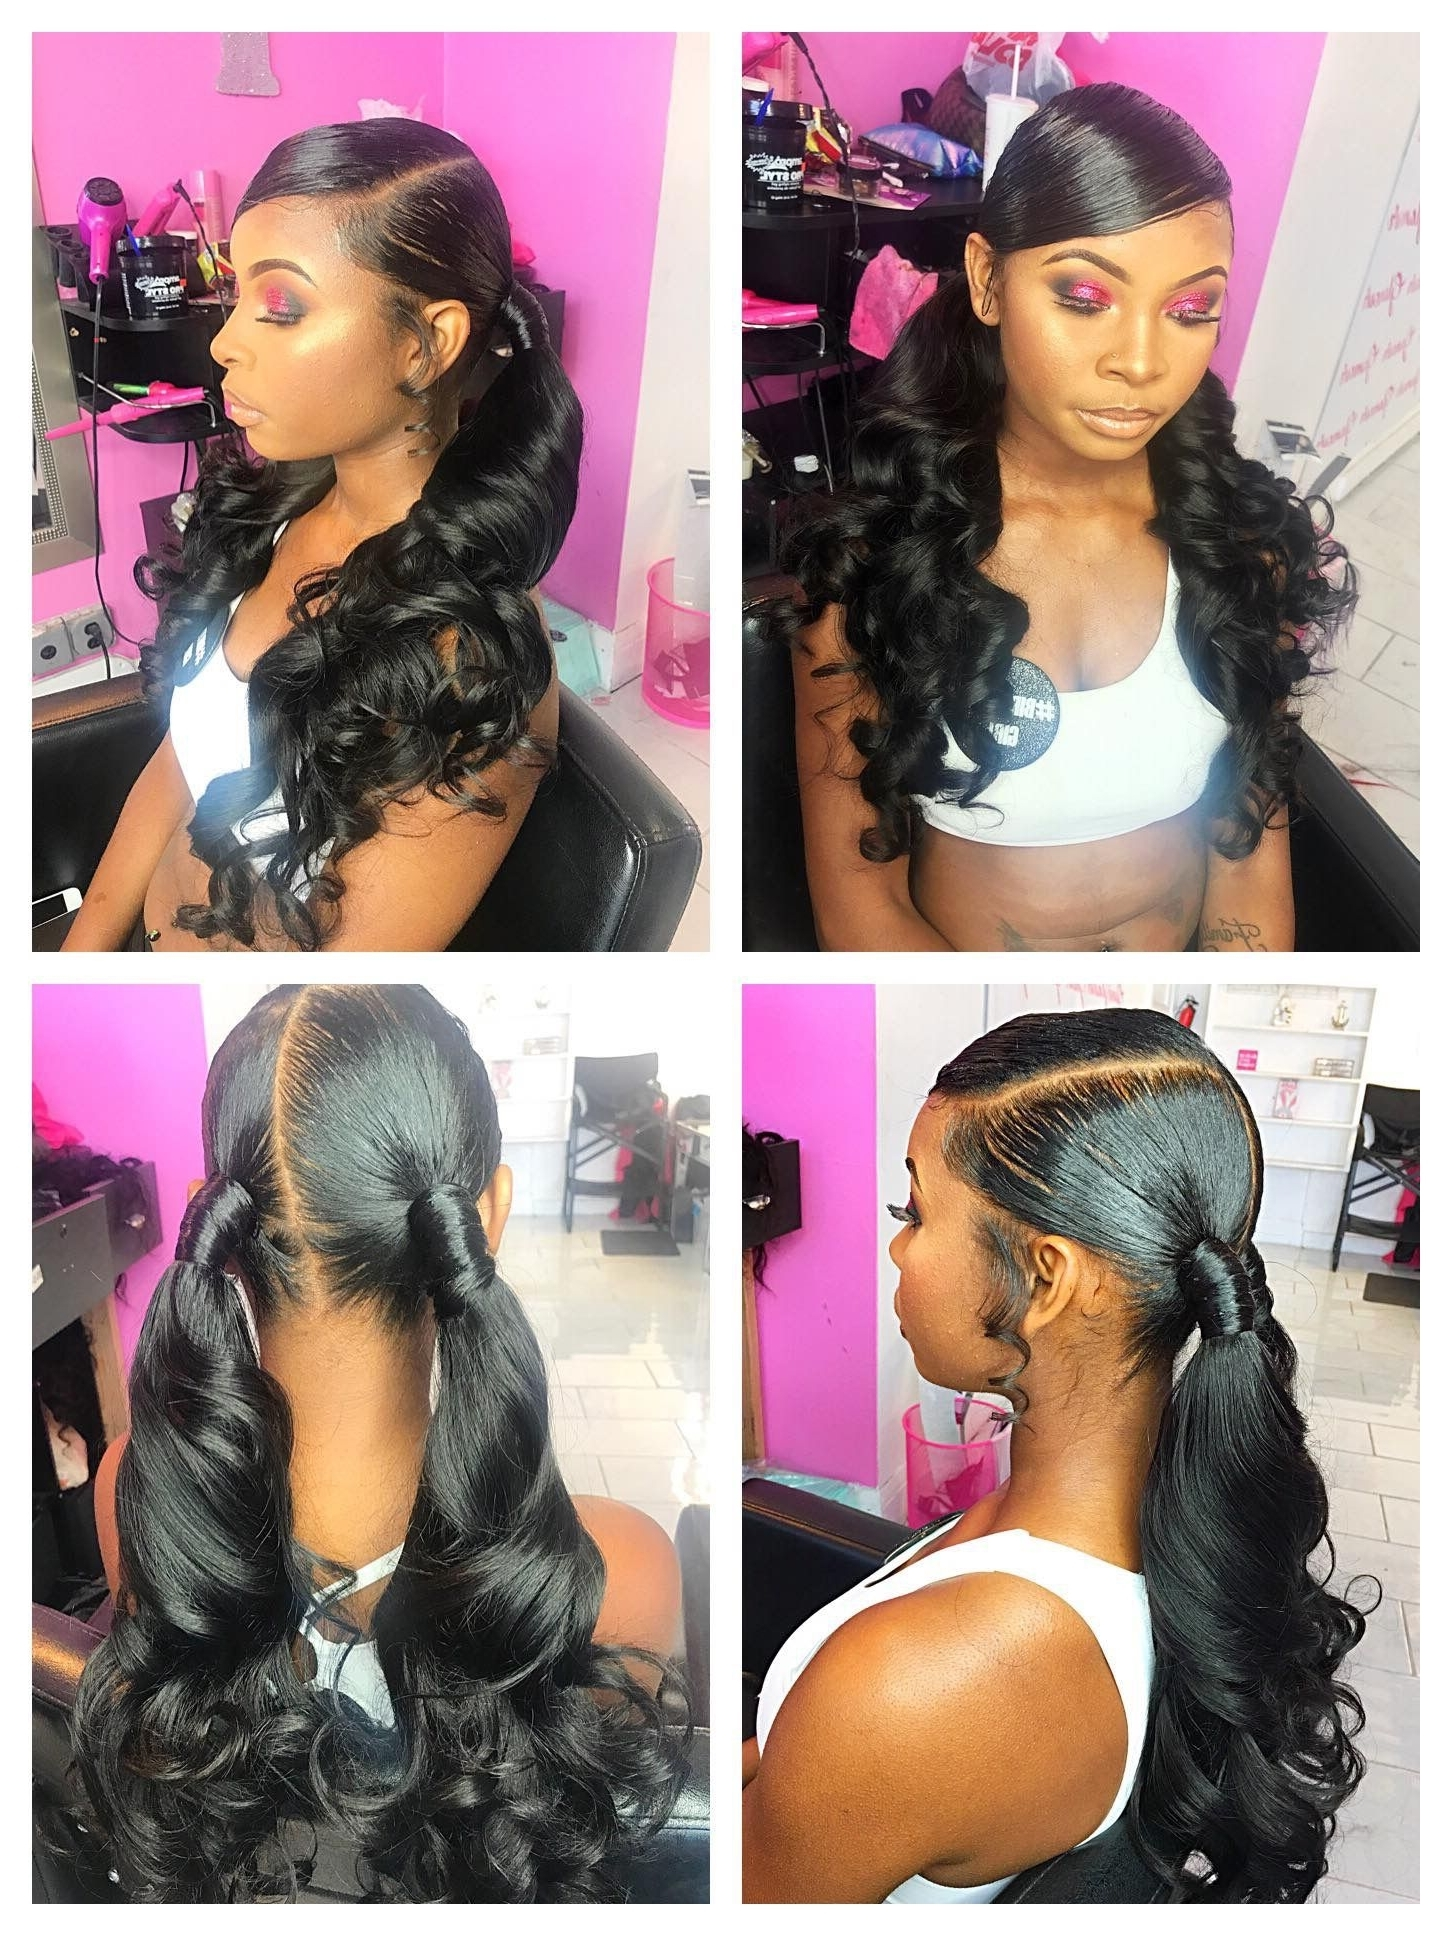 2017 Black Ponytail Hairstyles With A Bouffant Intended For Pinqueen Bee???? On Hair (View 2 of 20)